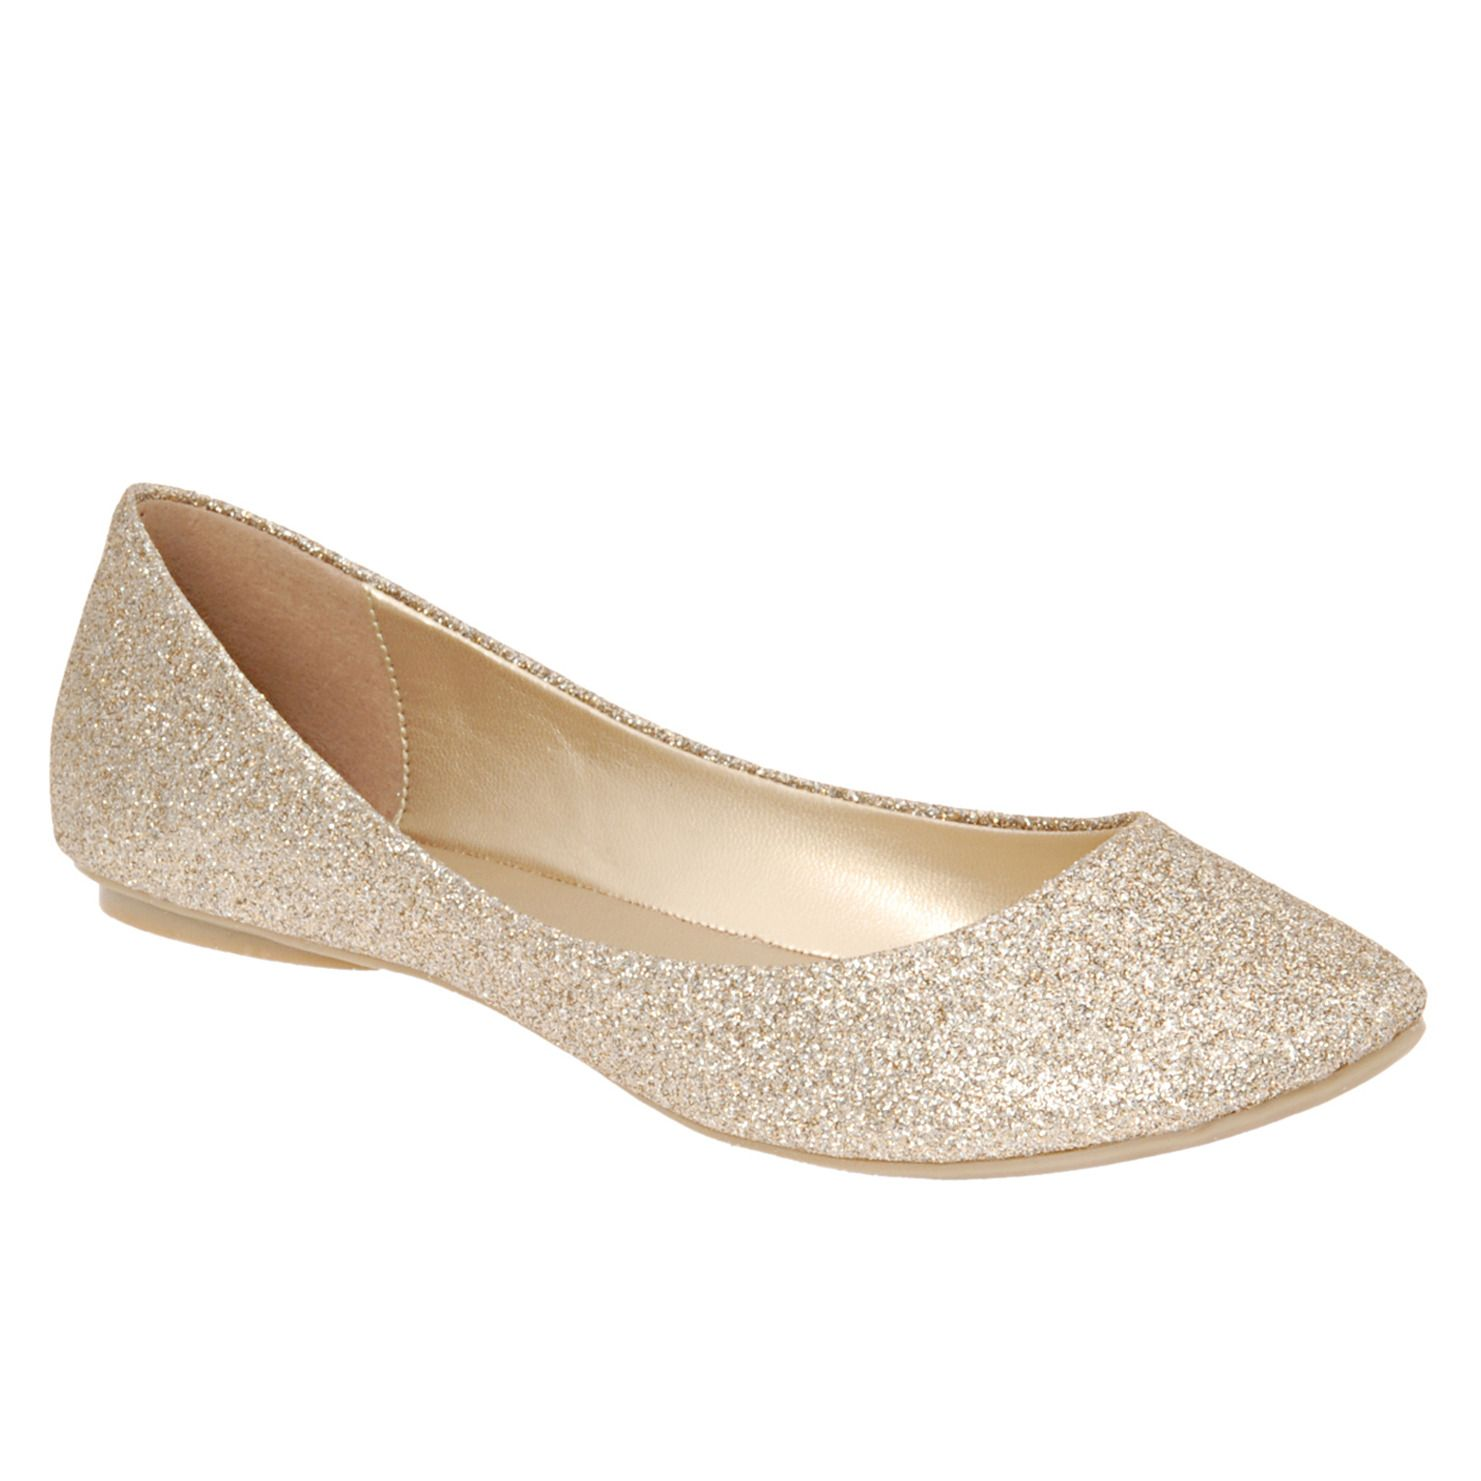 Buy ESPARAZA women s shoes flats at Spring Shoes. Free Shipping ... 363beb80f